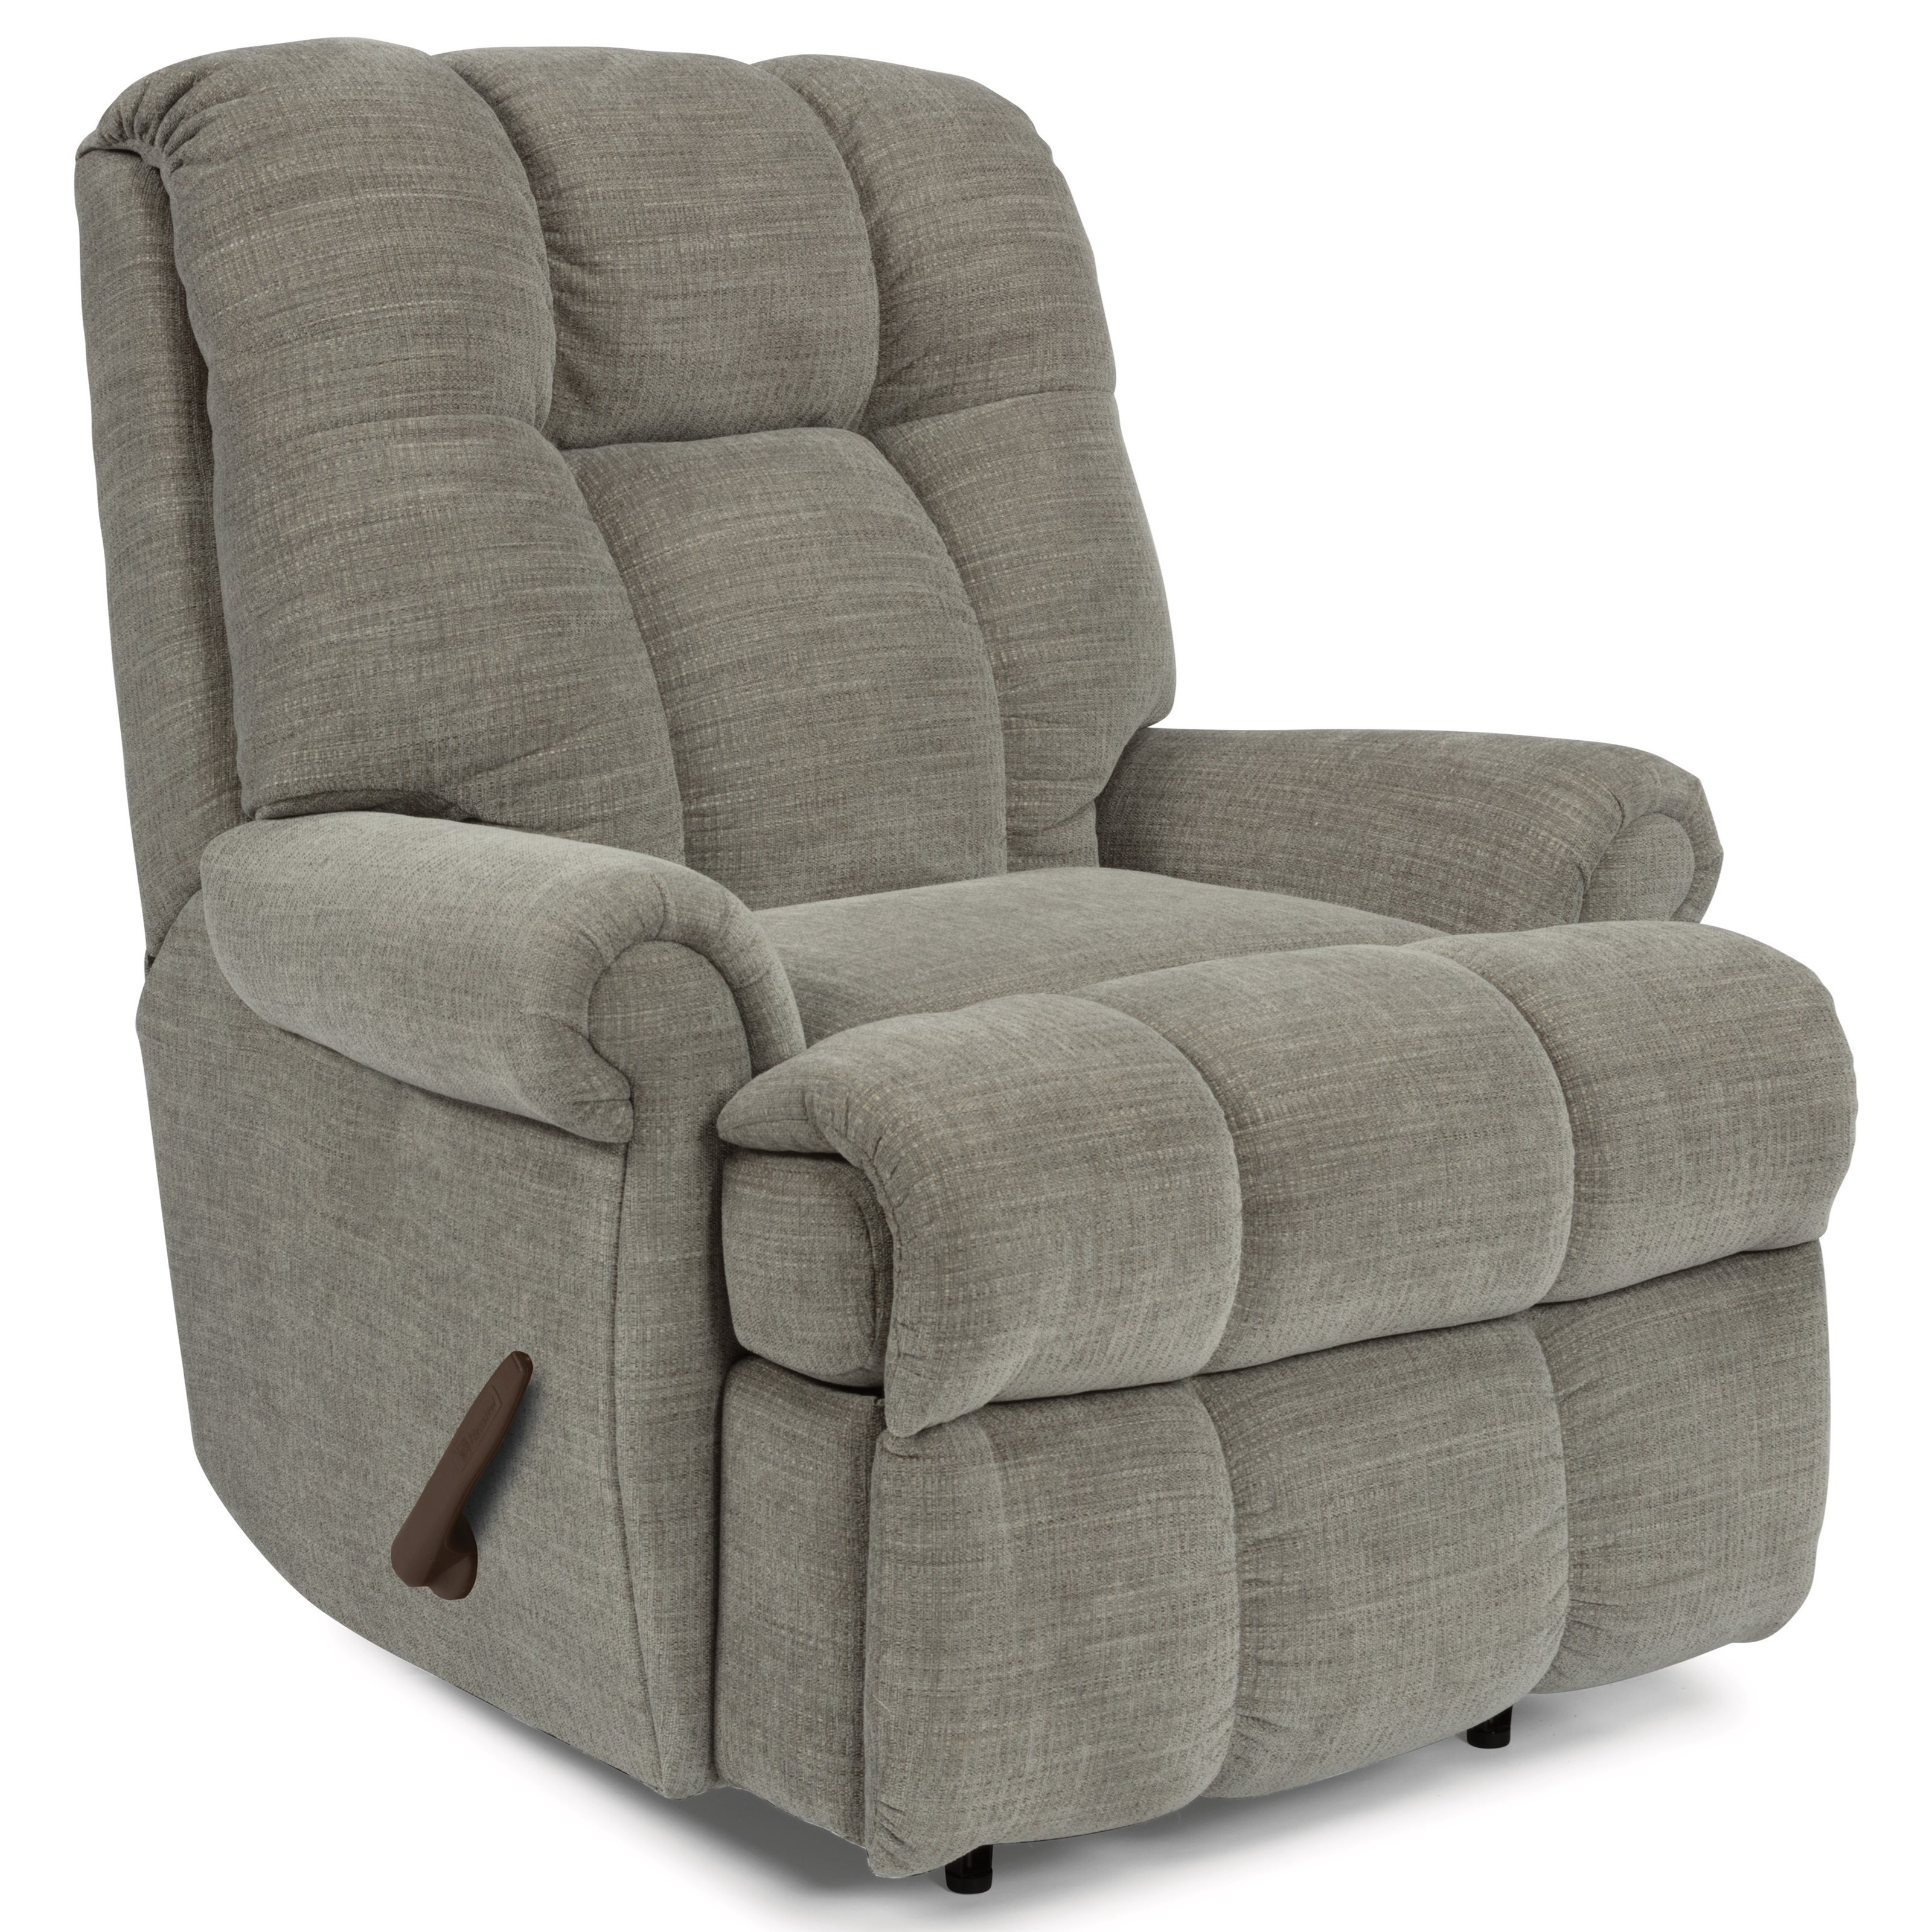 Accents Large Recliner by Flexsteel at Furniture and ApplianceMart